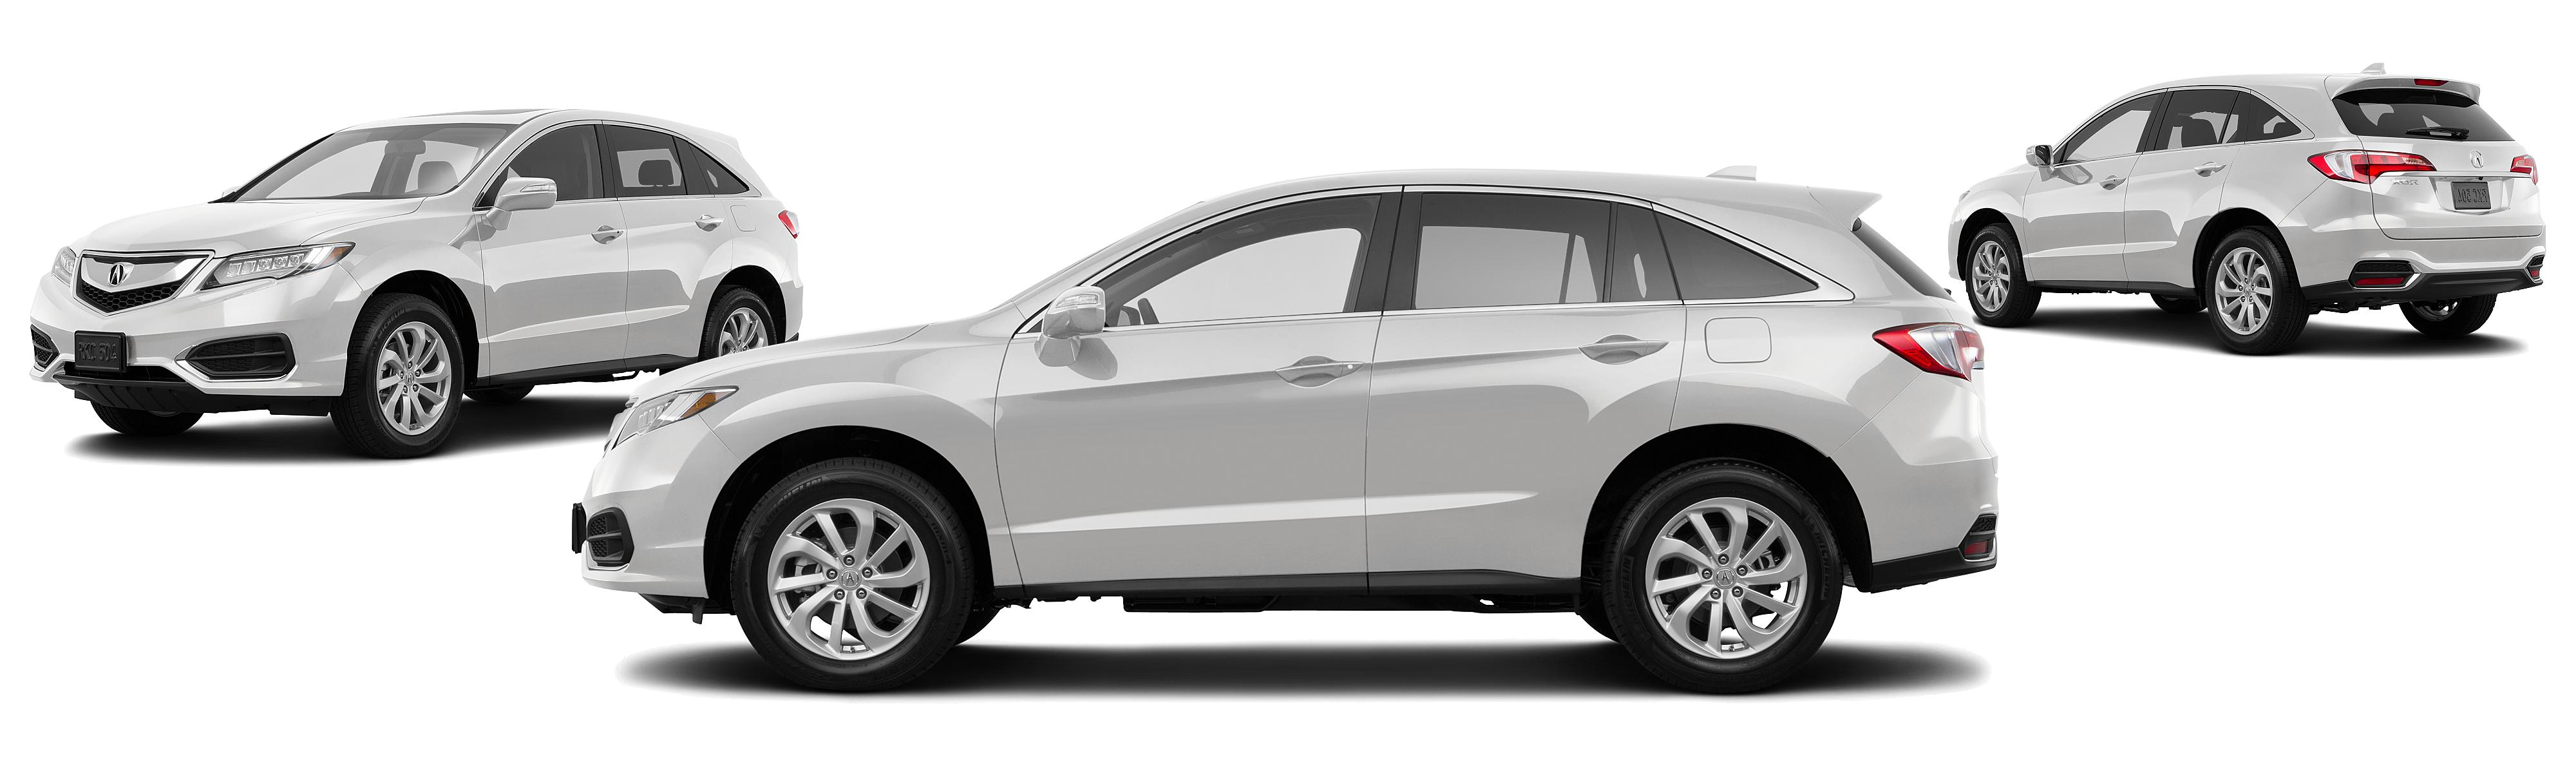 new iihs of safety rdx pick img acura release en top allnew all news joins vehicles lineup